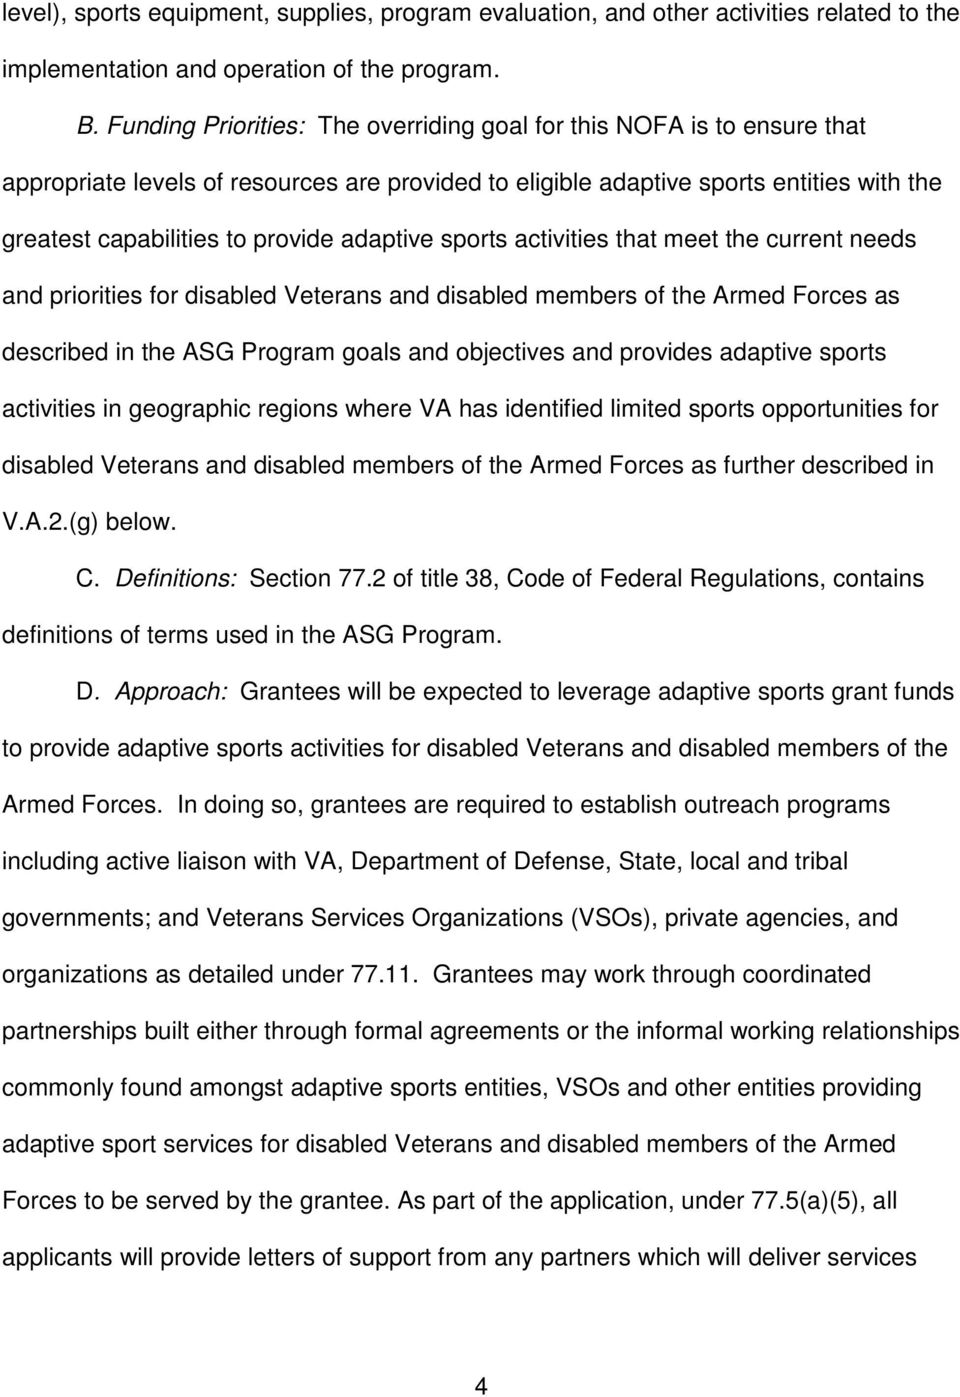 adaptive sports activities that meet the current needs and priorities for disabled Veterans and disabled members of the Armed Forces as described in the ASG Program goals and objectives and provides